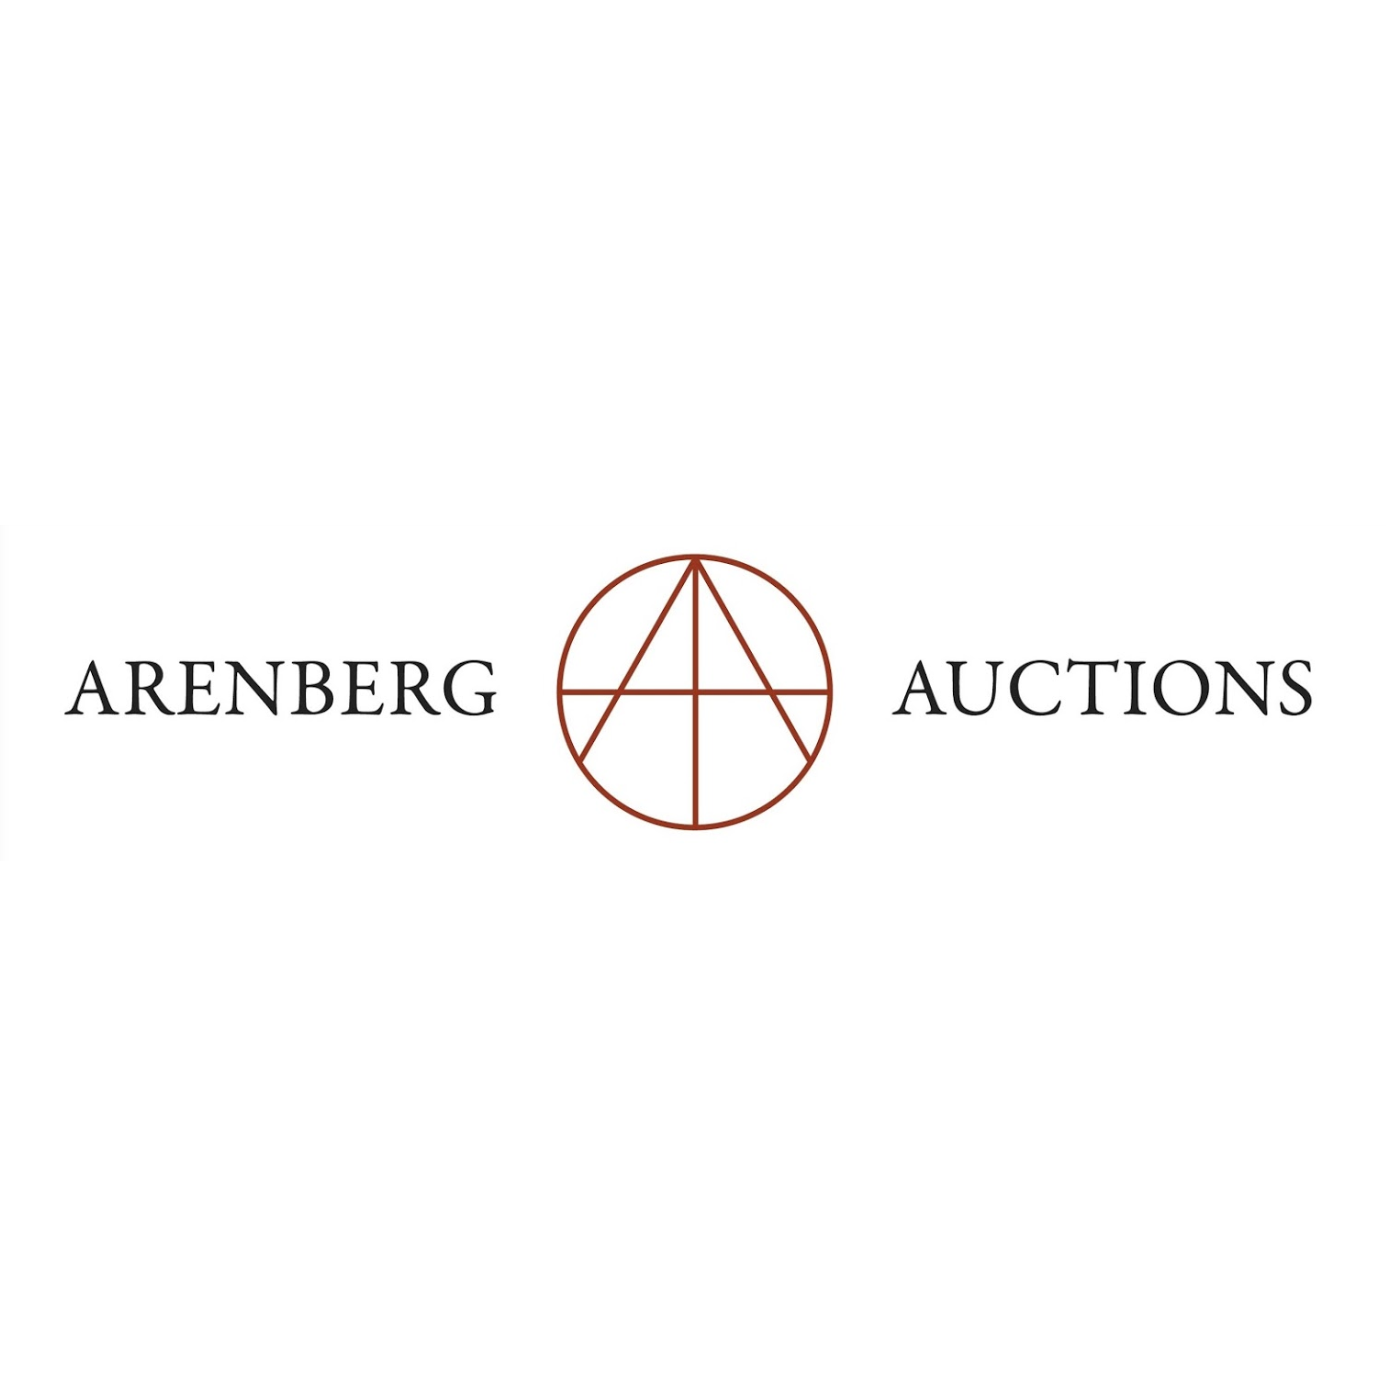 Arenberg Auctions